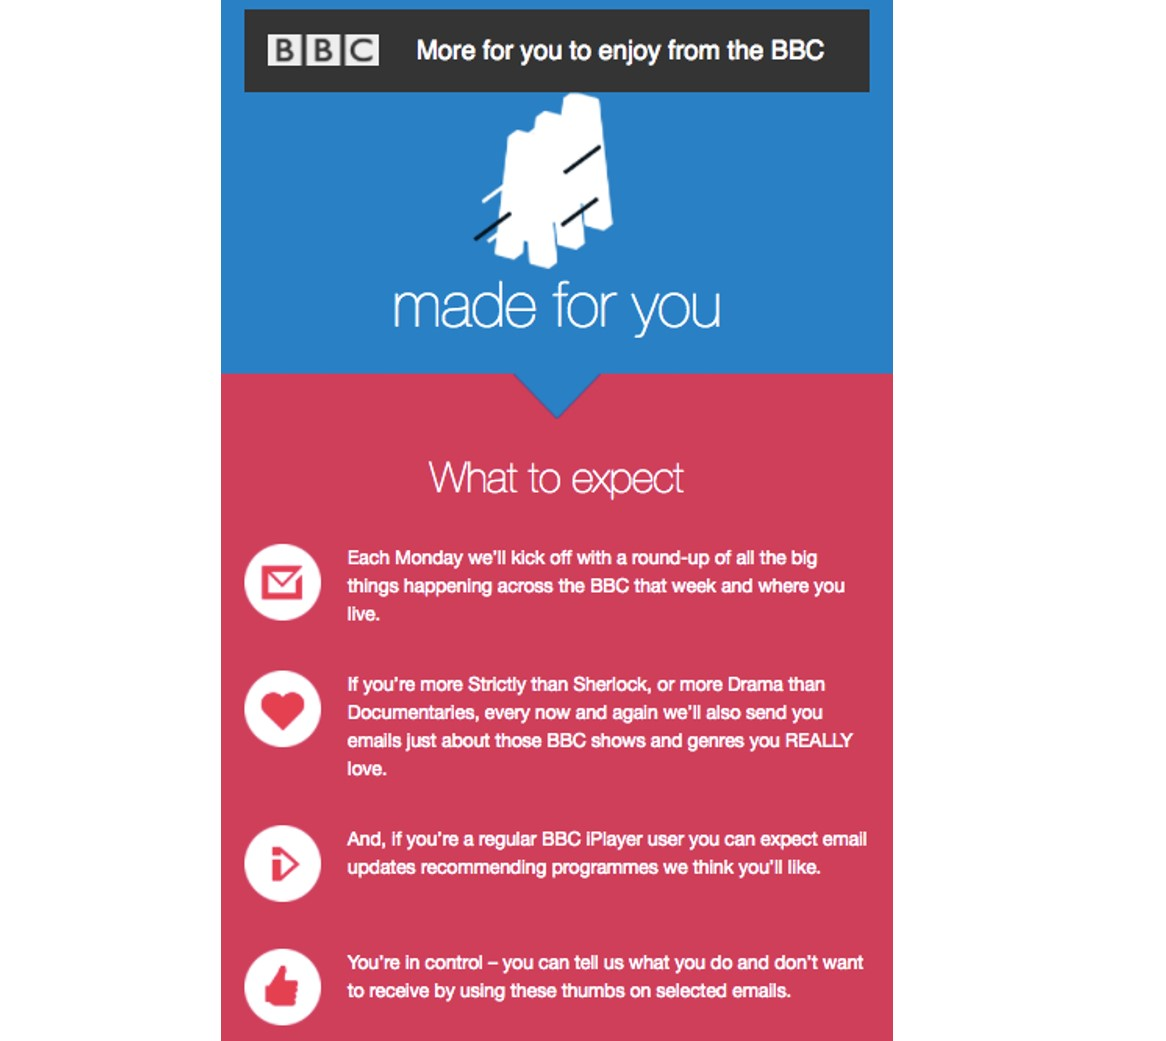 BBC welcome email